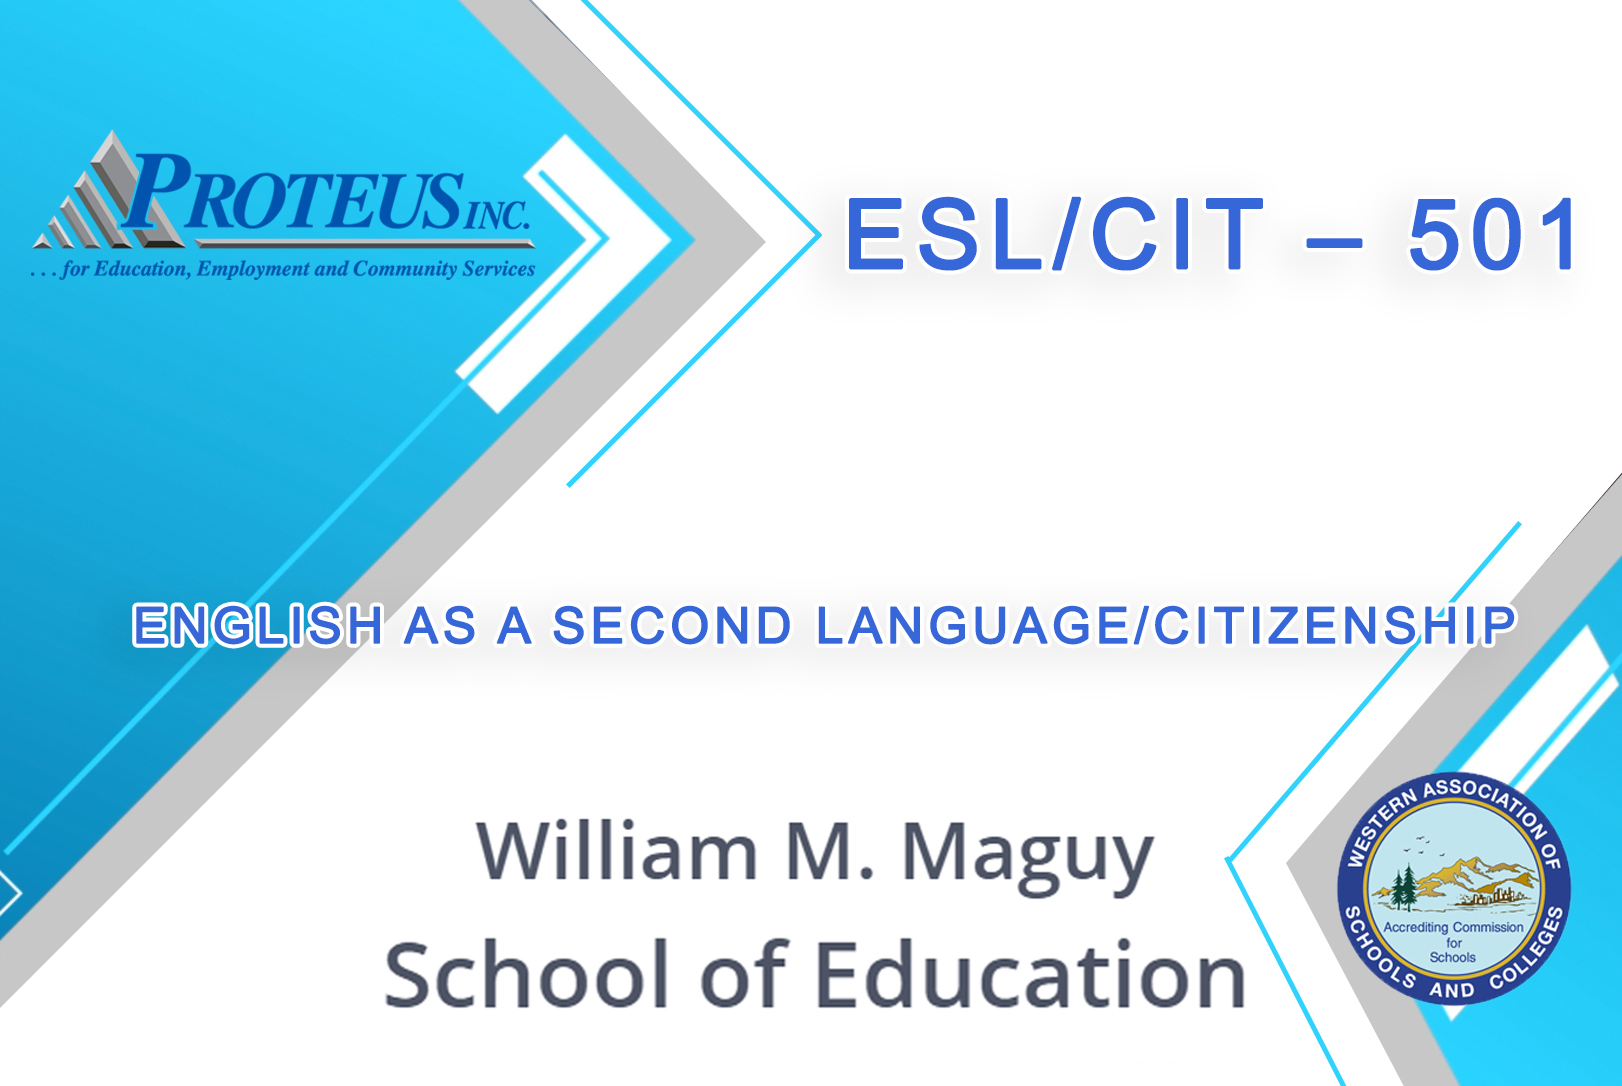 ENGLISH AS A SECOND LANGUAGE/CITIZENSHIP